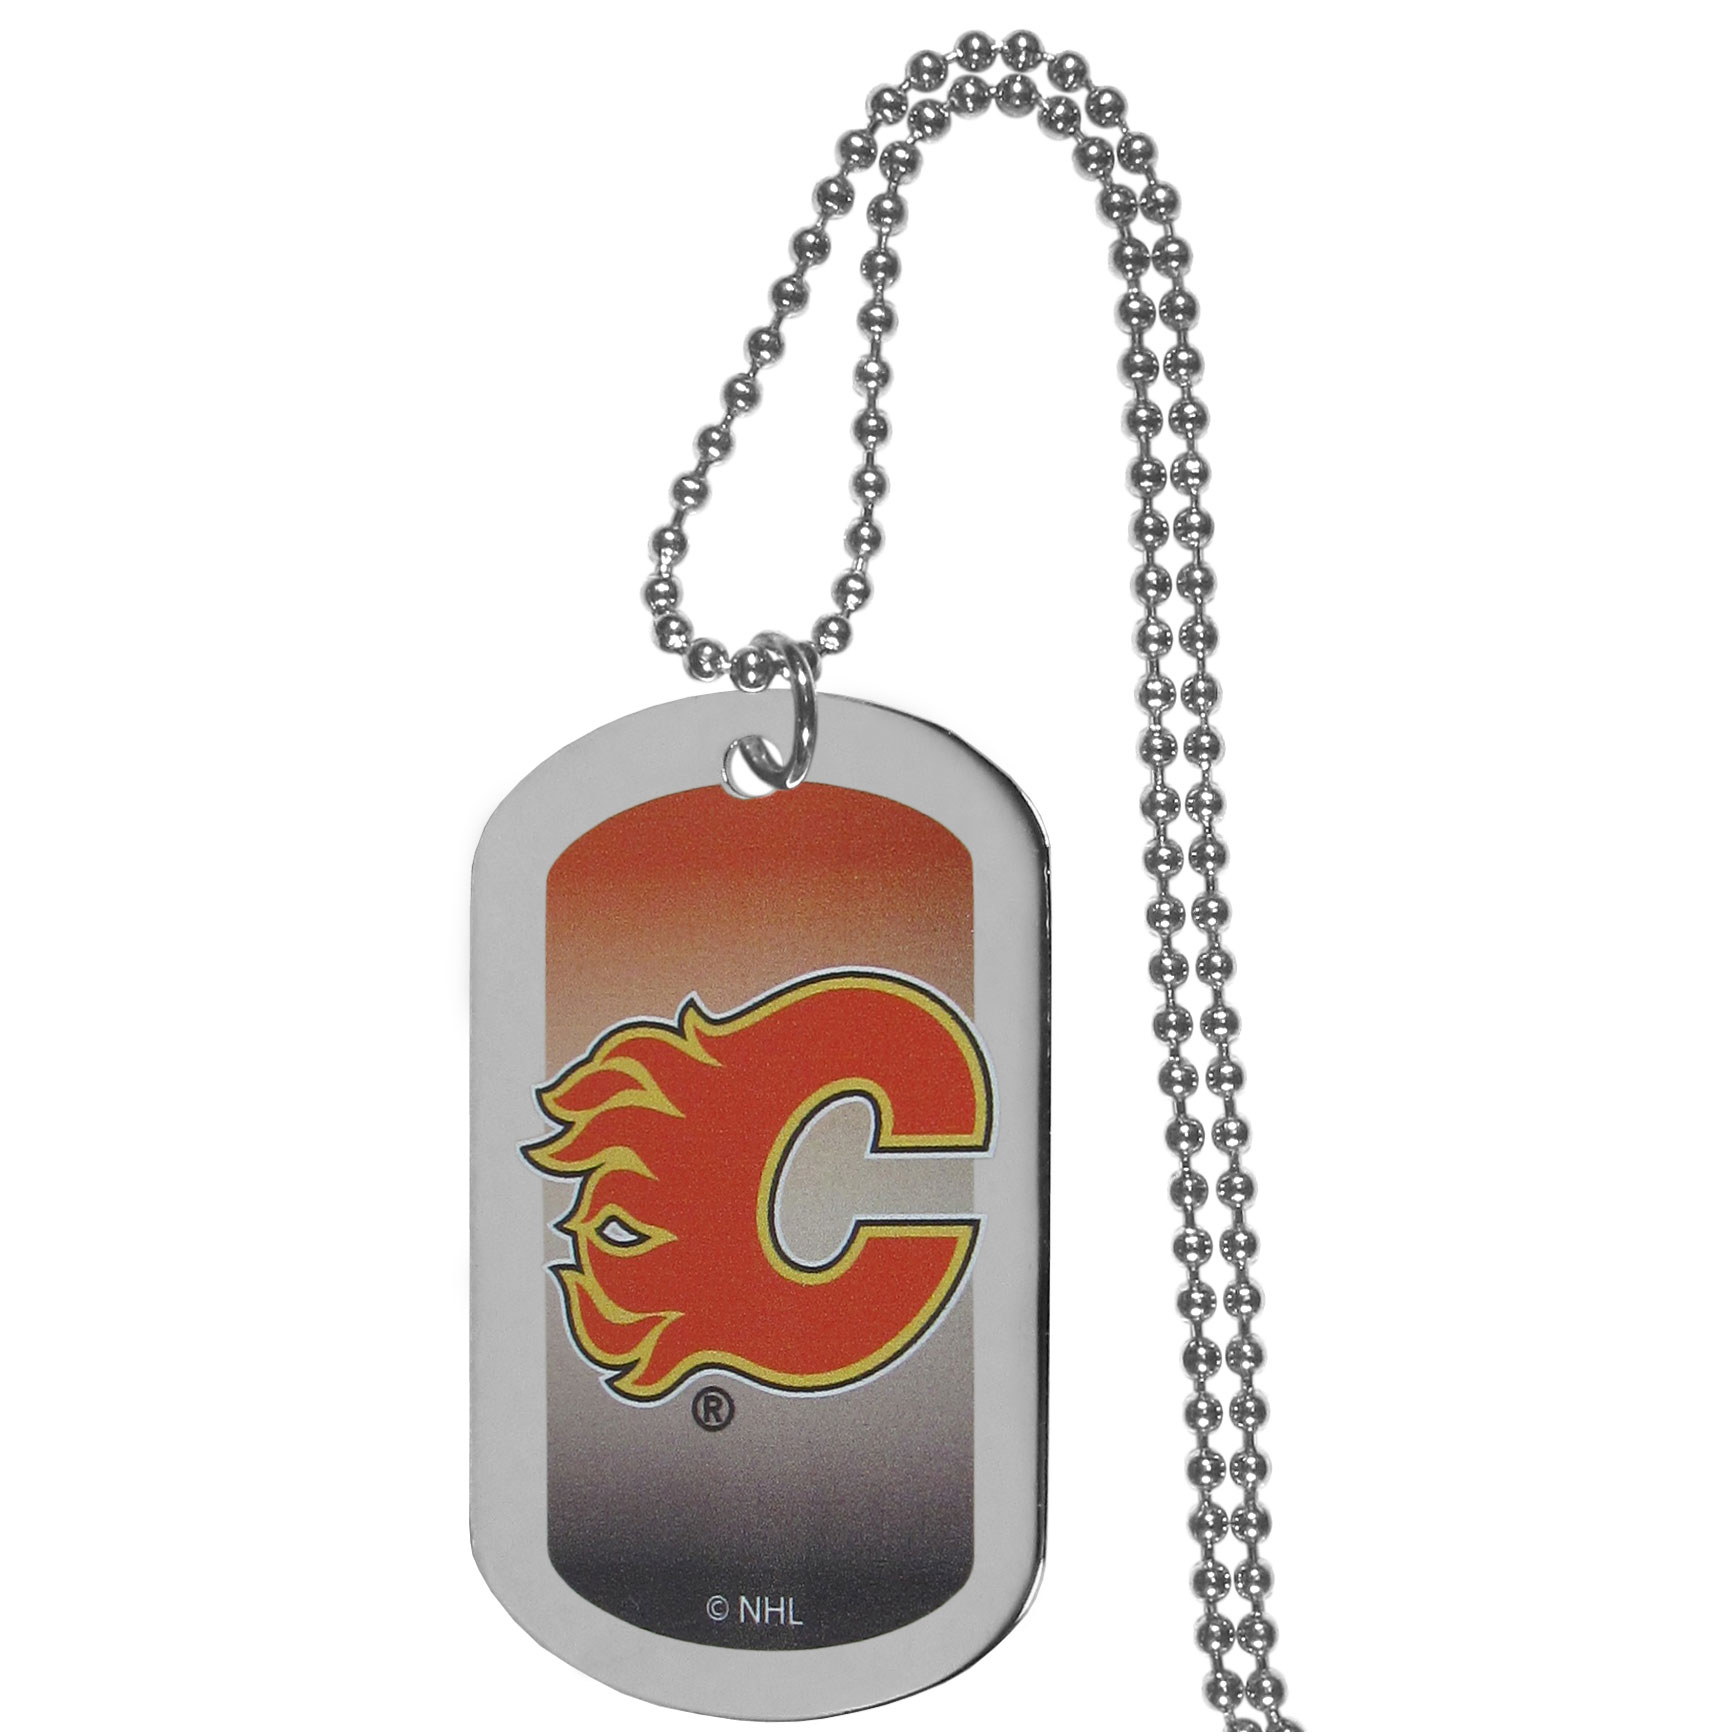 Calgary Flames® Team Tag Necklace - Dog tag necklaces are a fashion statement that is here to stay. The sporty version of the classic tag features a gradient print in team colors featuring a full color team logo over a high polish tag to create a bold and sporty look. The tag comes on a 26 inch ball chain with a ball and joint clasp. Any Calgary Flames® would be proud to wear this attractive fashion accessory.